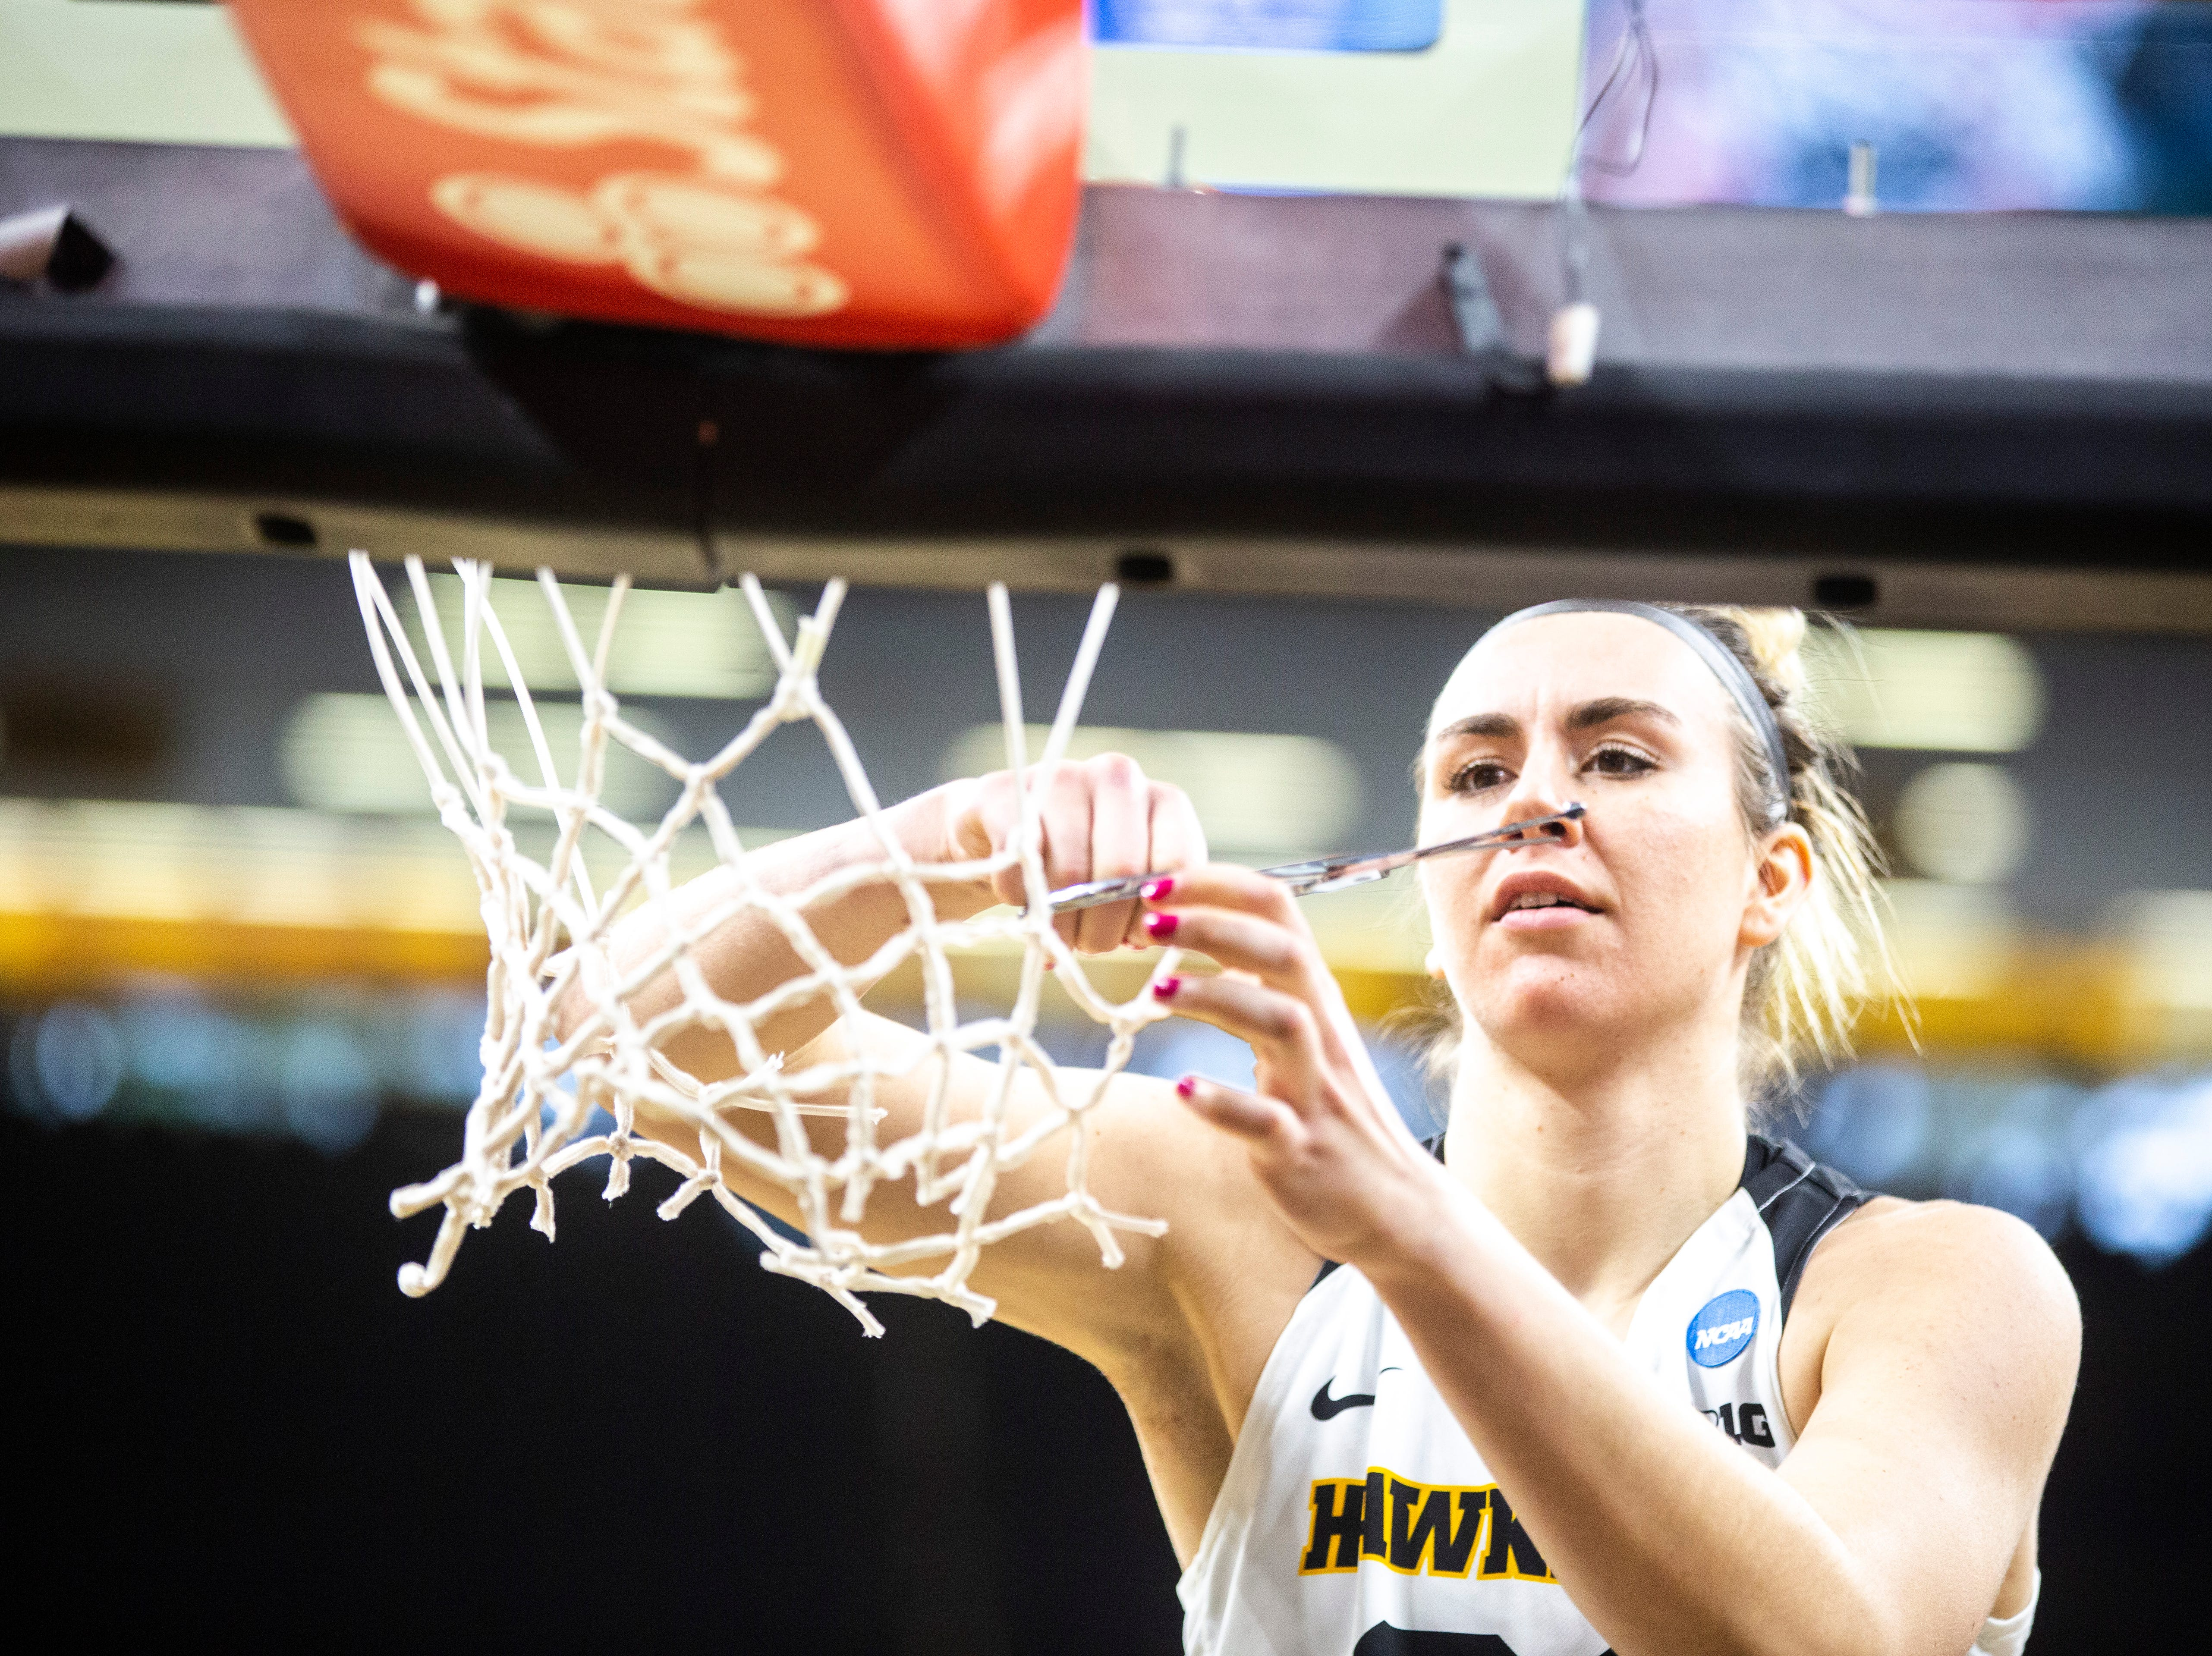 Iowa forward Hannah Stewart (21) cuts down the nets on the court after a NCAA women's basketball tournament second-round game, Sunday, March 24, 2019, at Carver-Hawkeye Arena in Iowa City, Iowa.